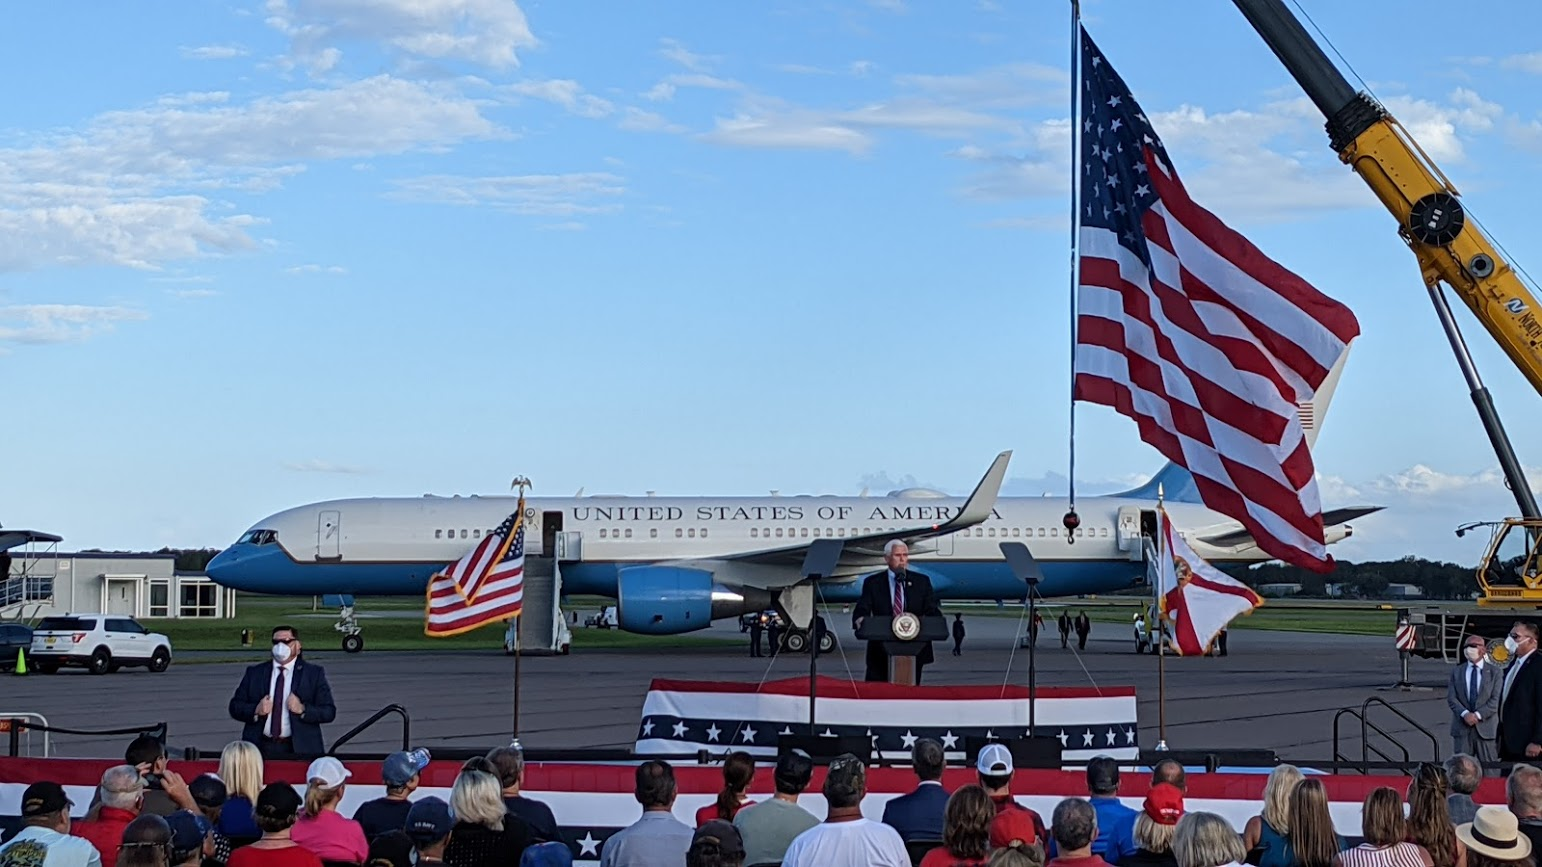 Vice President Mike Pence in front of Air Force 2. Credit: Megan Pratz